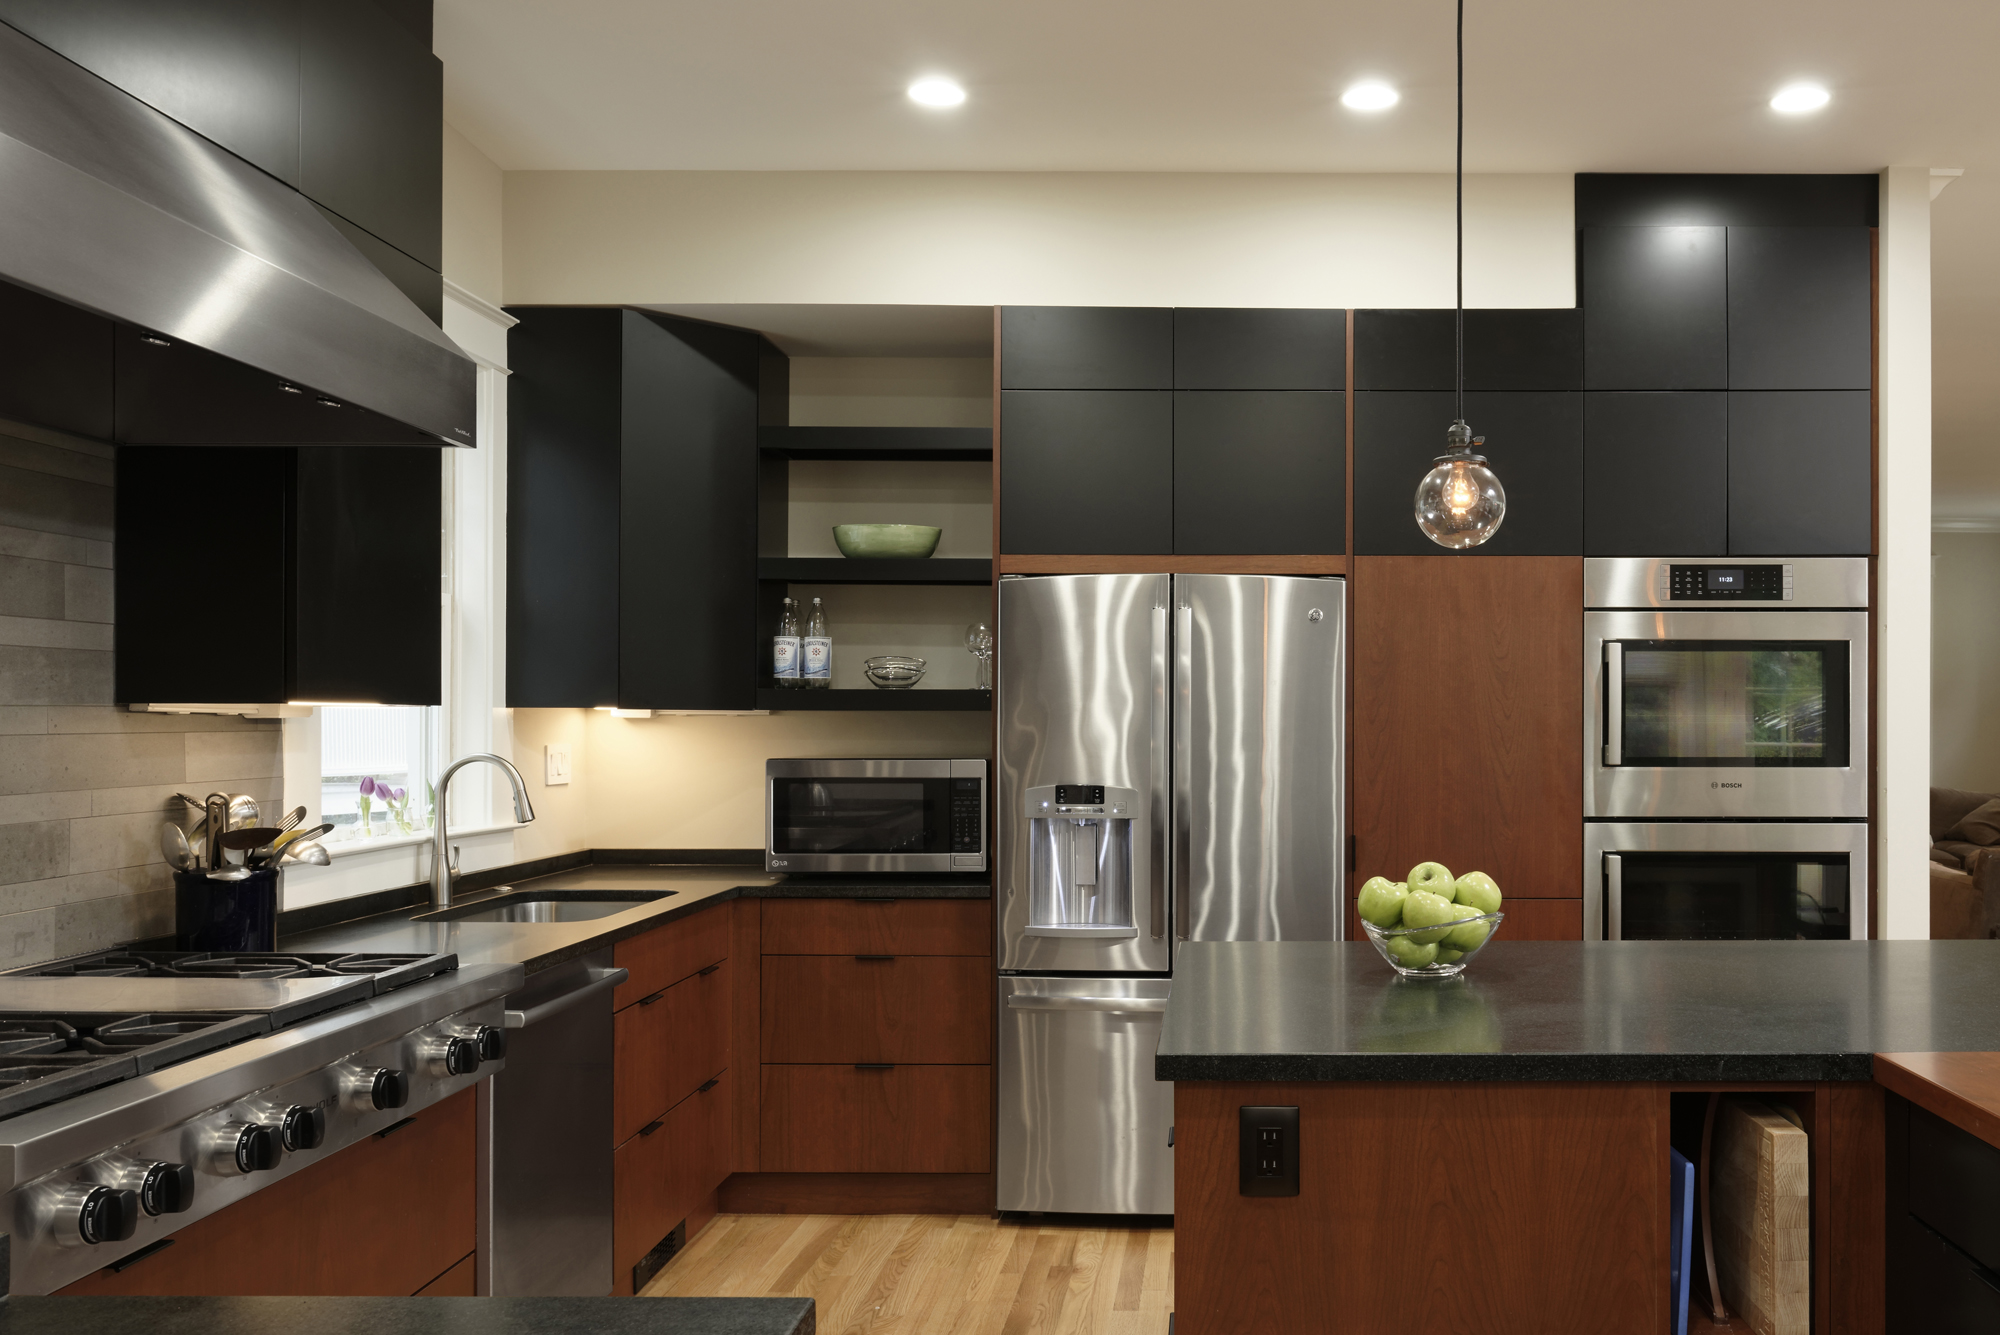 Kitchen design washington dc washington dc kitchen Kitchen design remodel dc